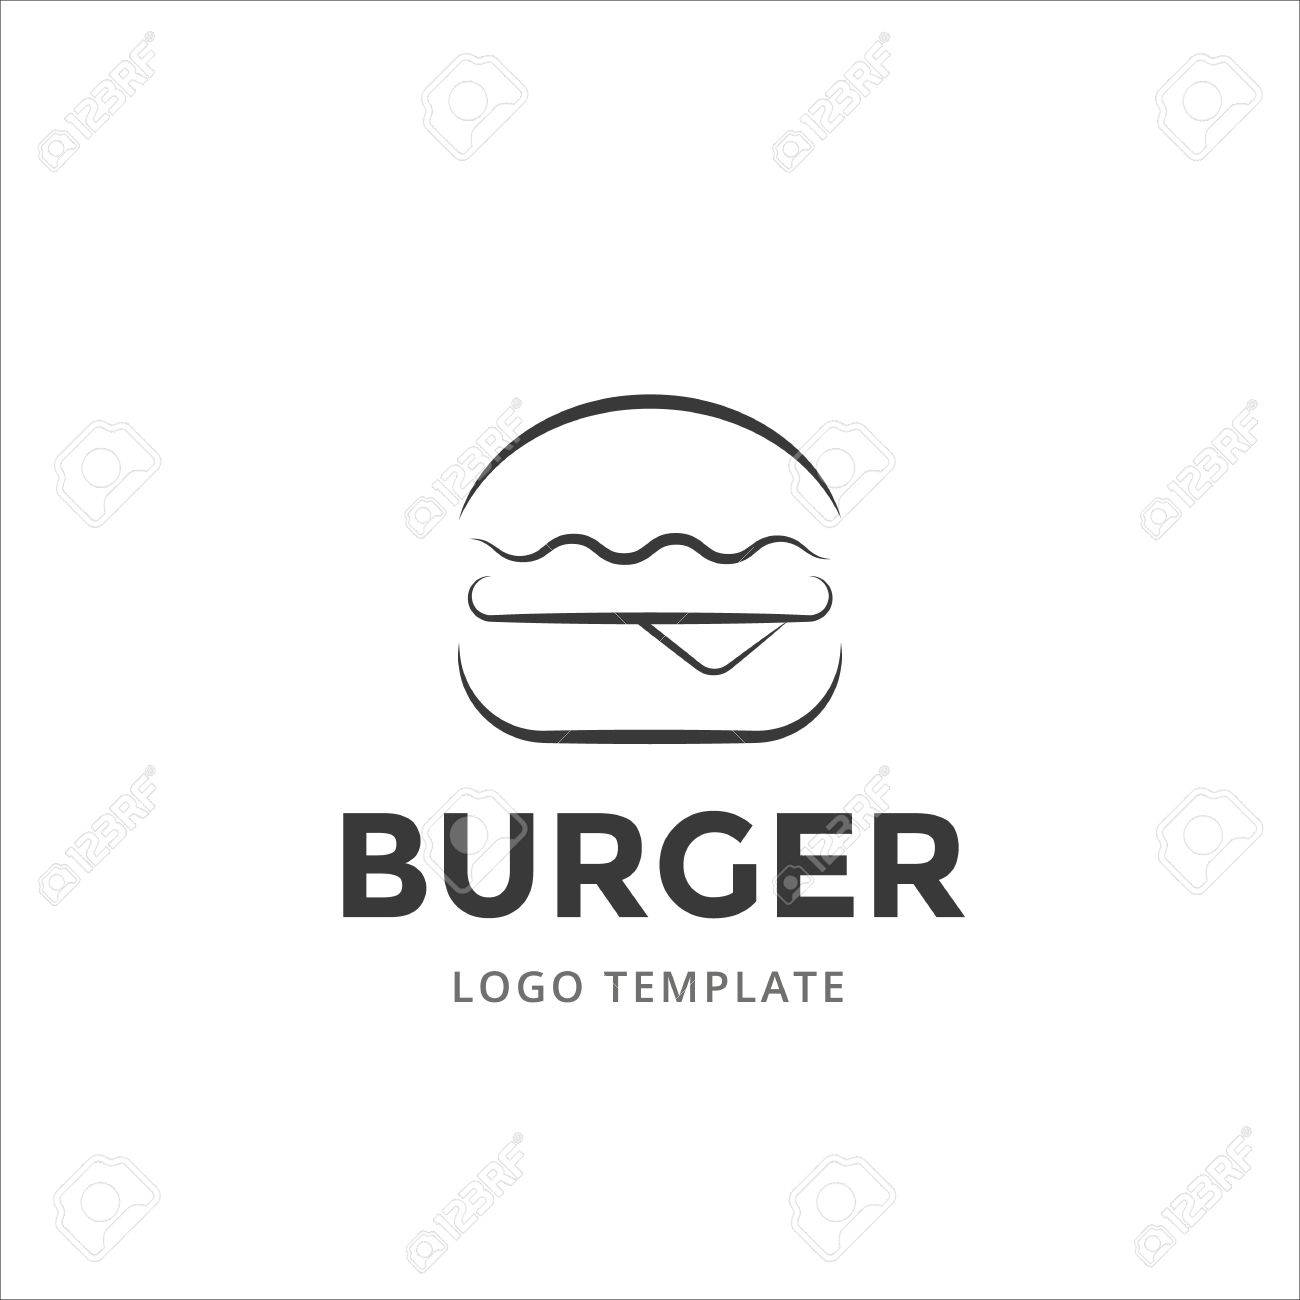 Burger vector logo template in line style. - 58049325